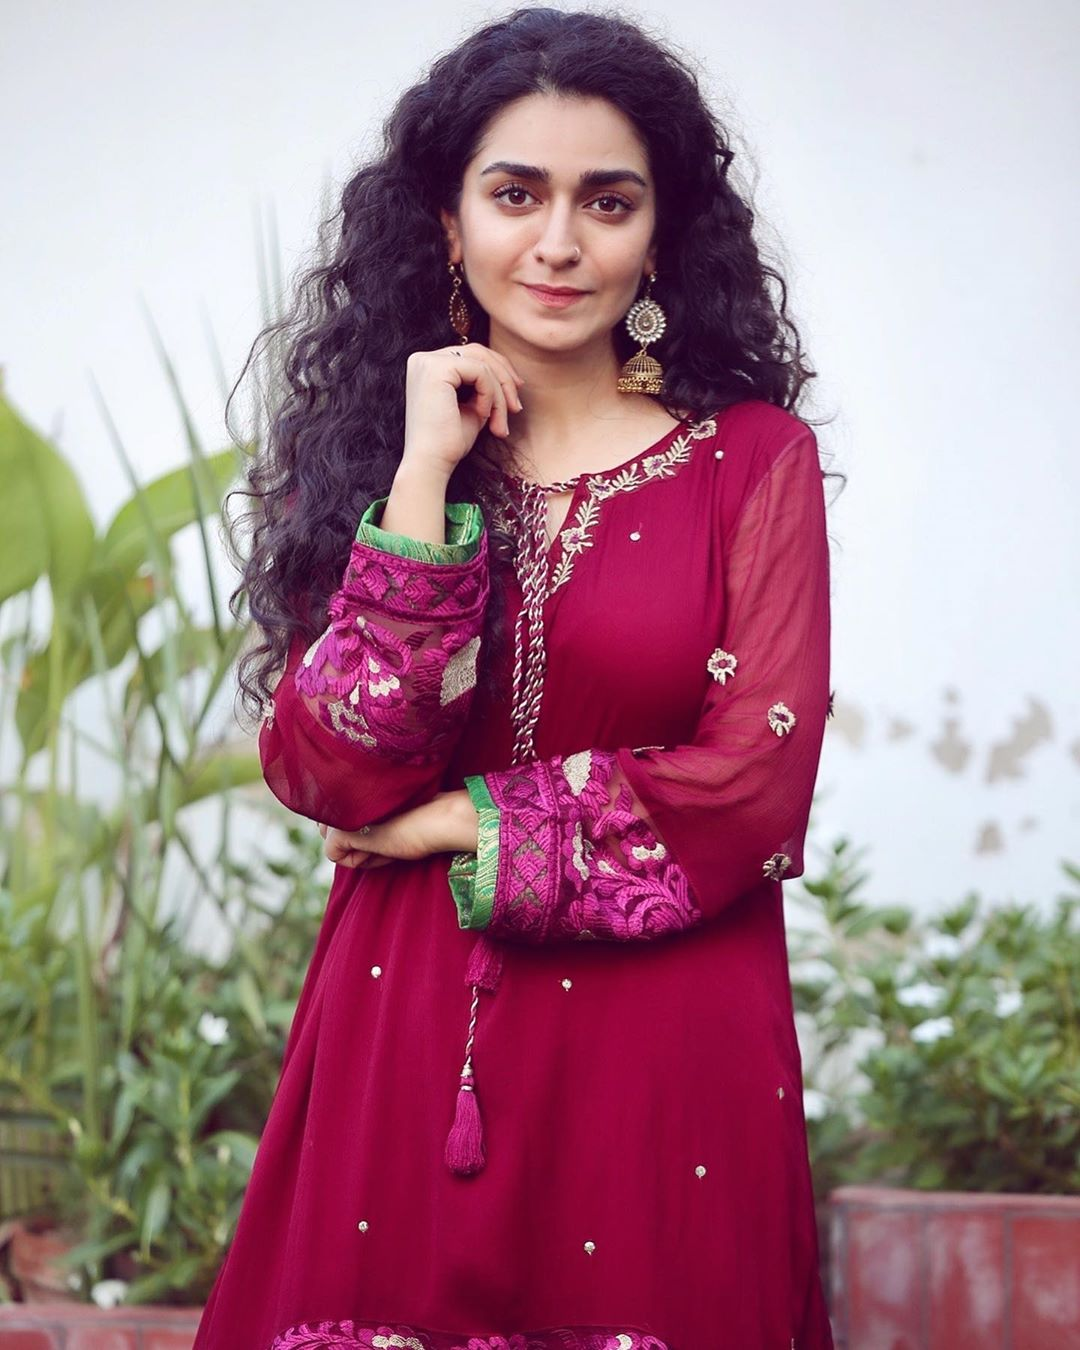 Hajra Yamin Beautiful Picture Collection from her Instagram